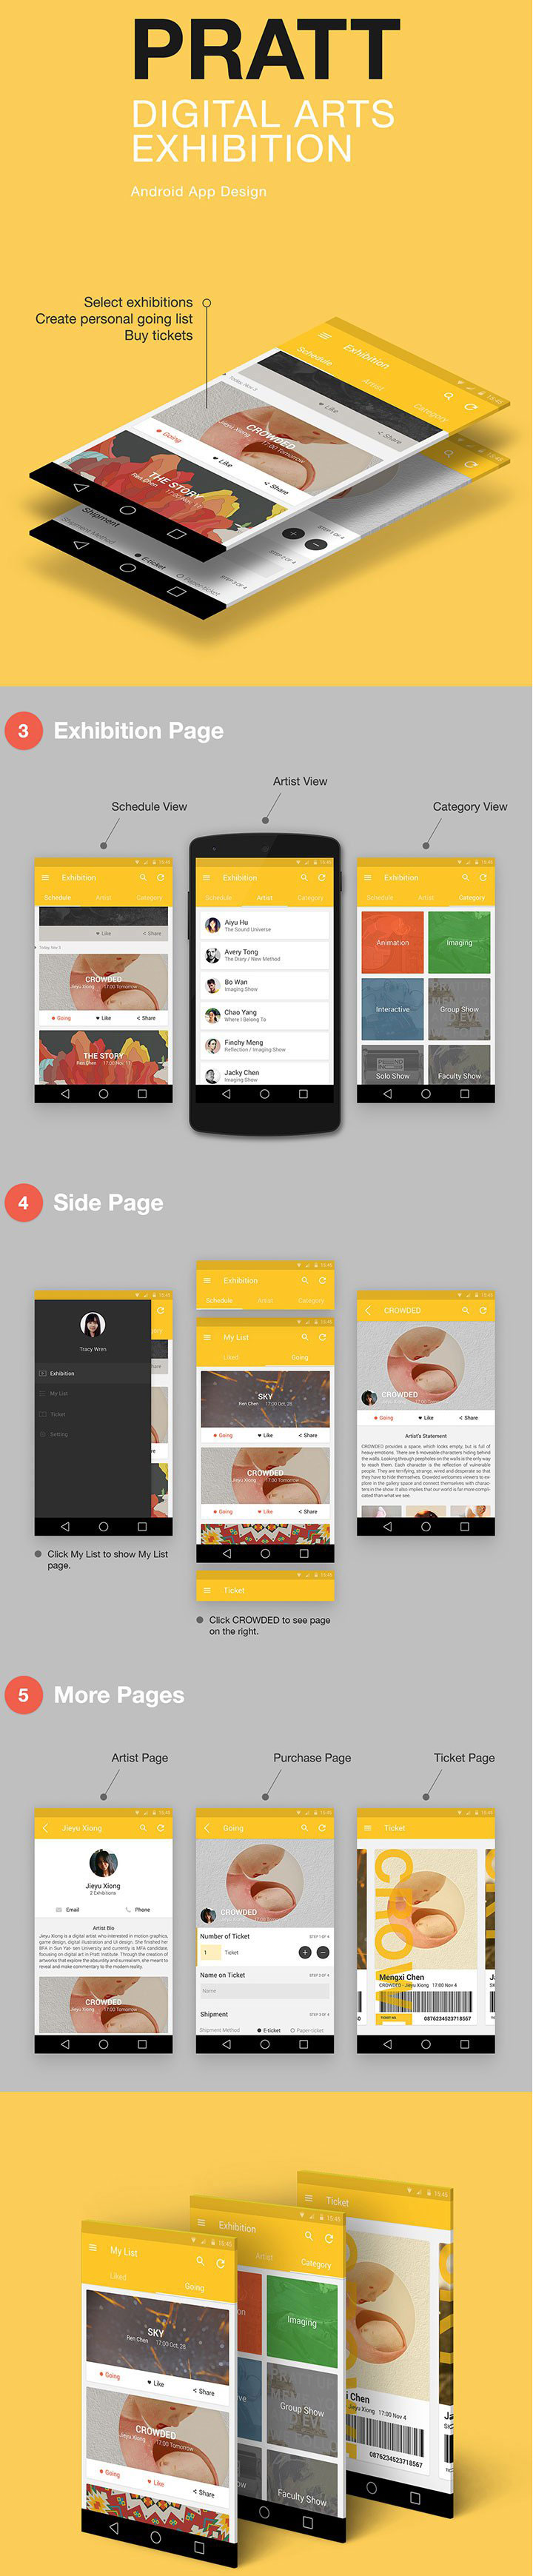 android-app-design-Pratt